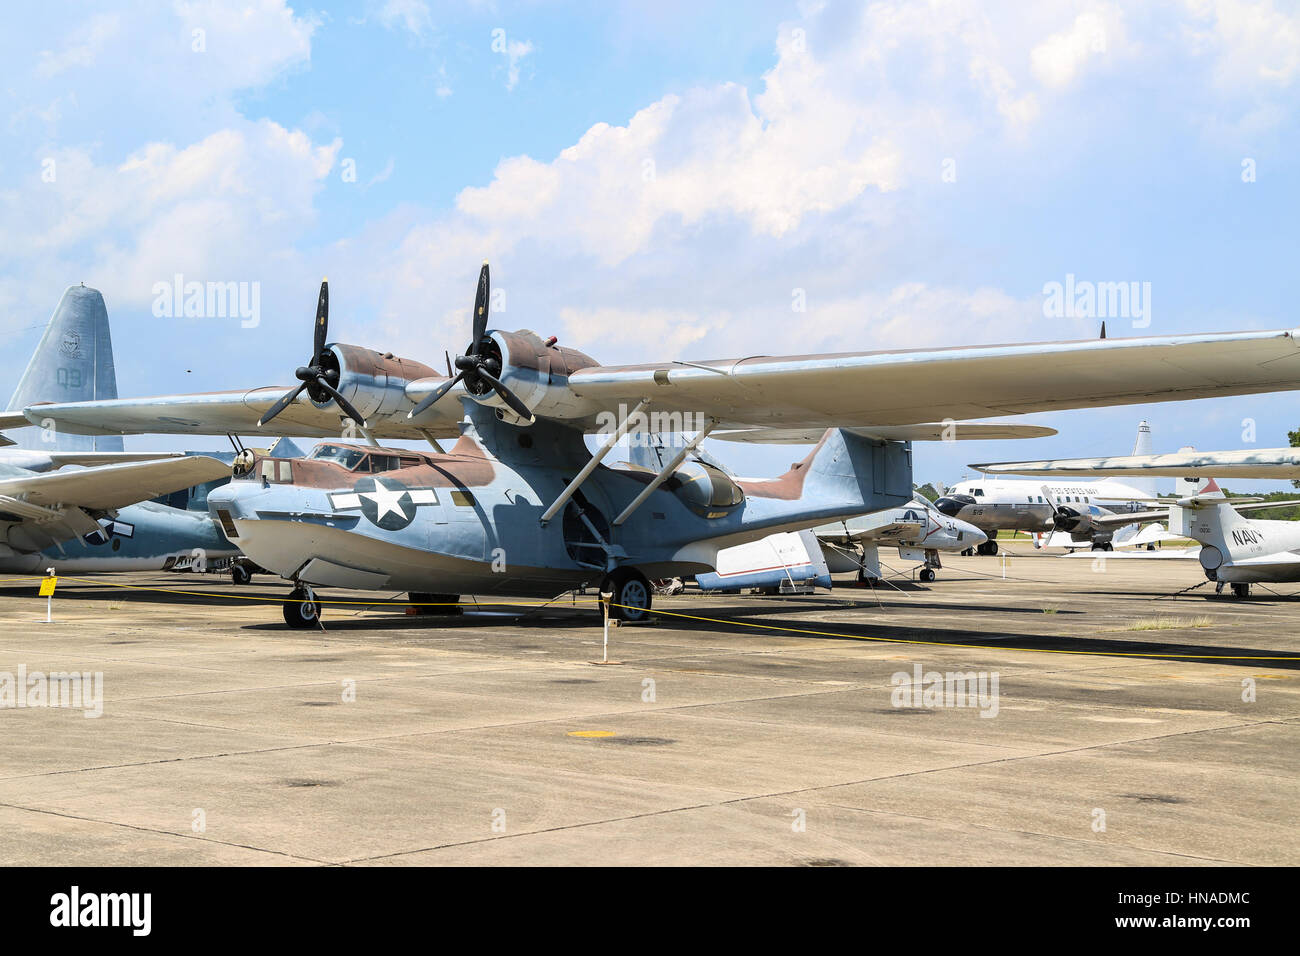 Consolidated PBY-5A Catalina Navy Sea Plane - Stock Image